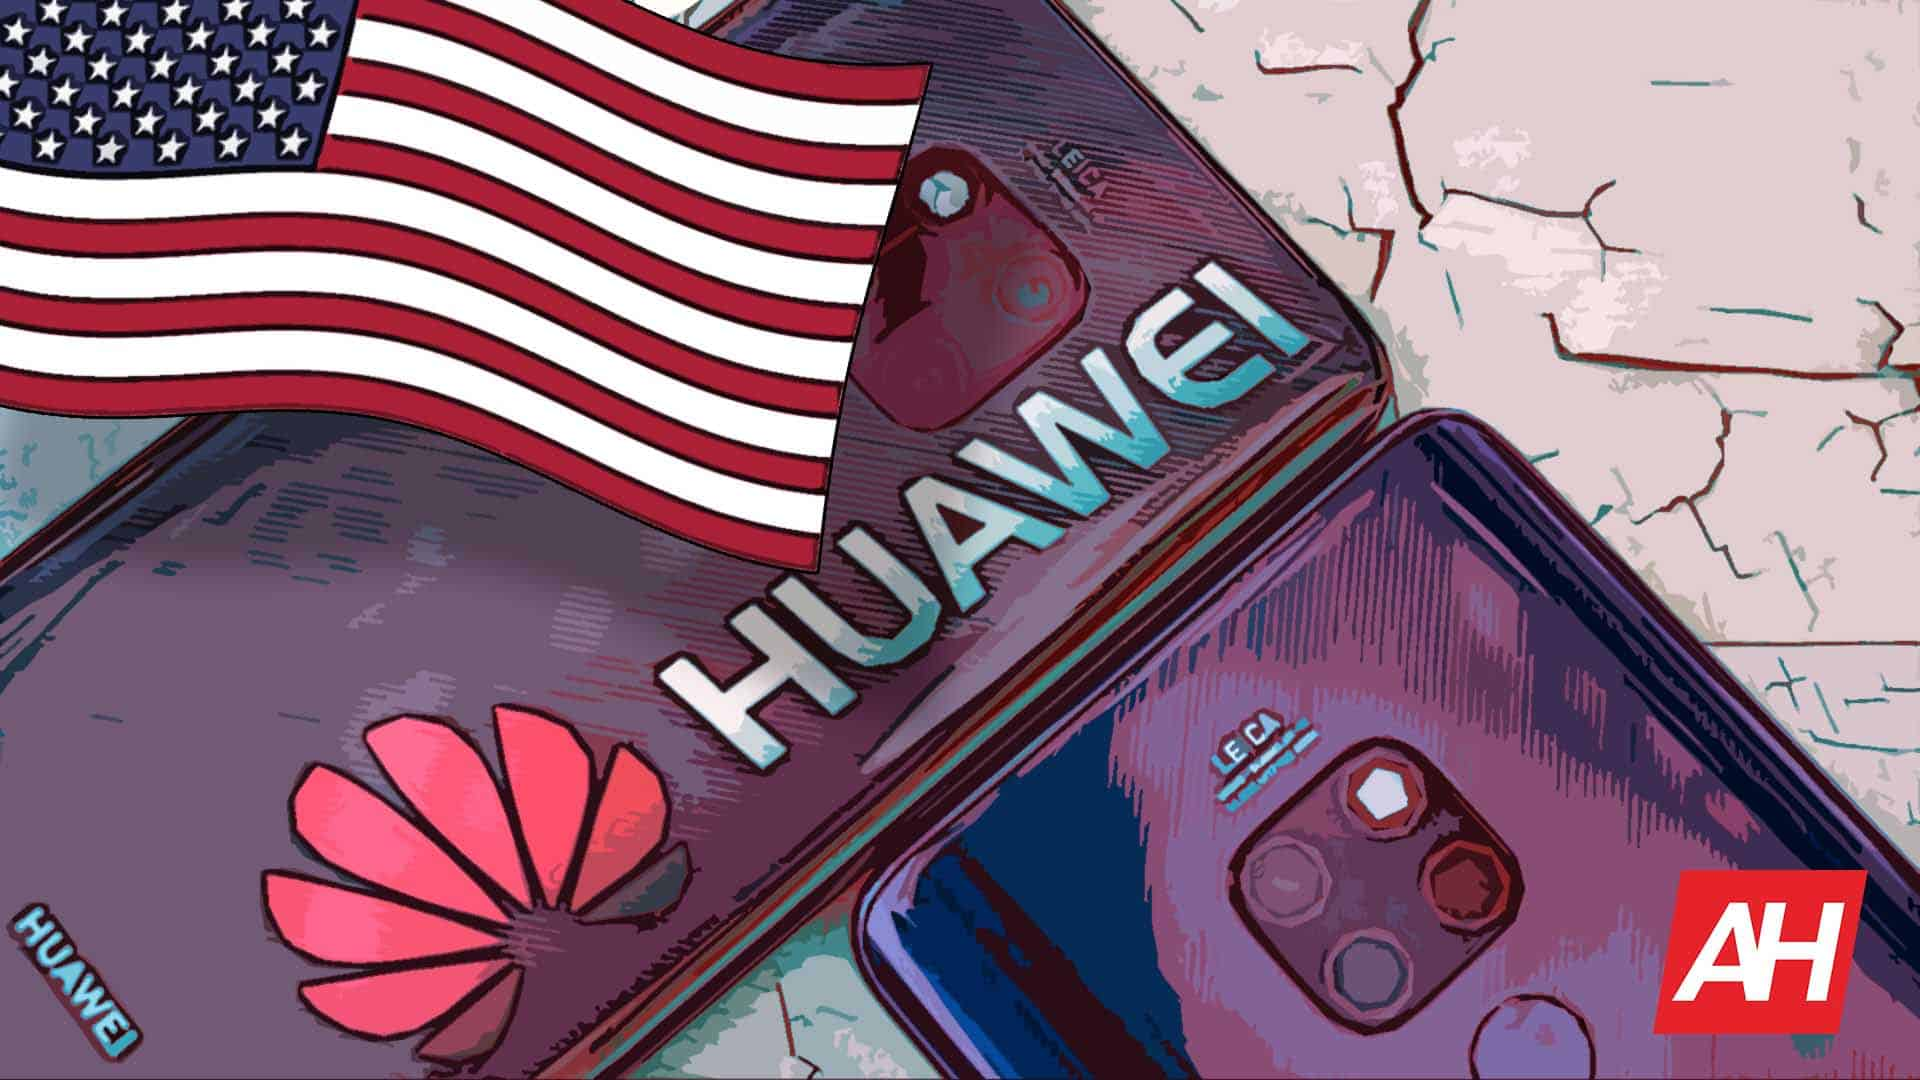 Huawei Logo Smartphones USA US America Flag Illustration AH May 20 2019